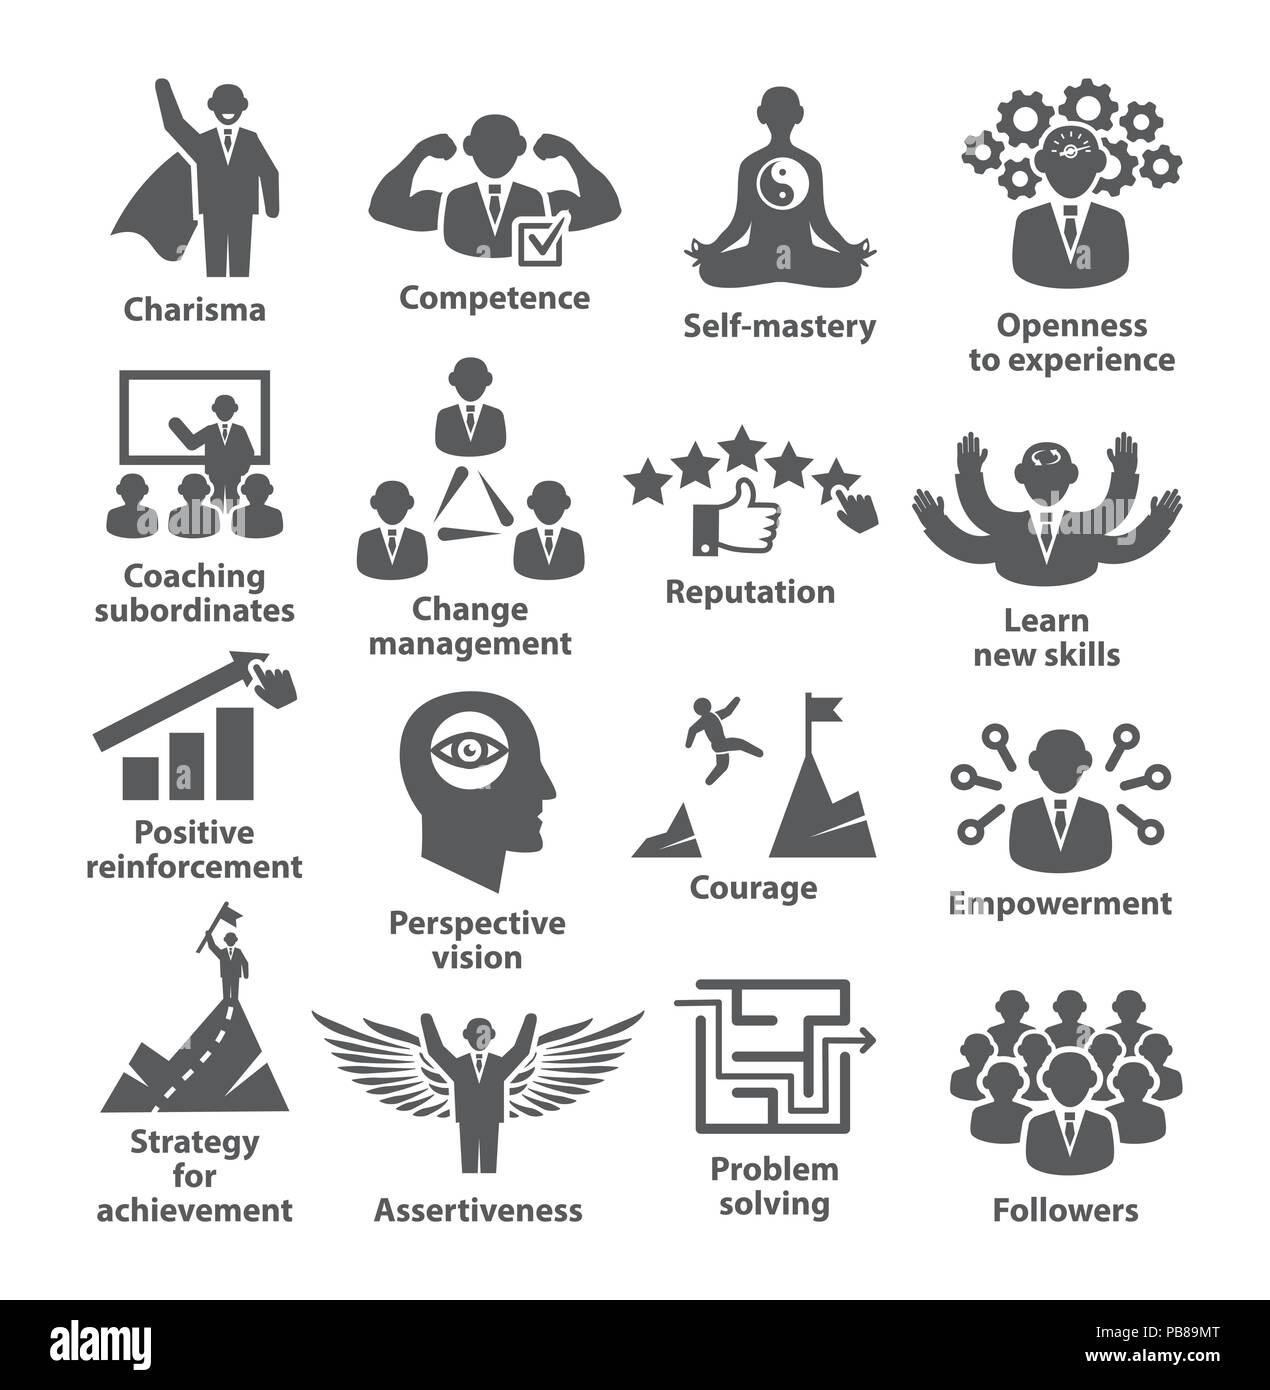 Business management icons Pack 45 Icons for leadership, career - Stock Image